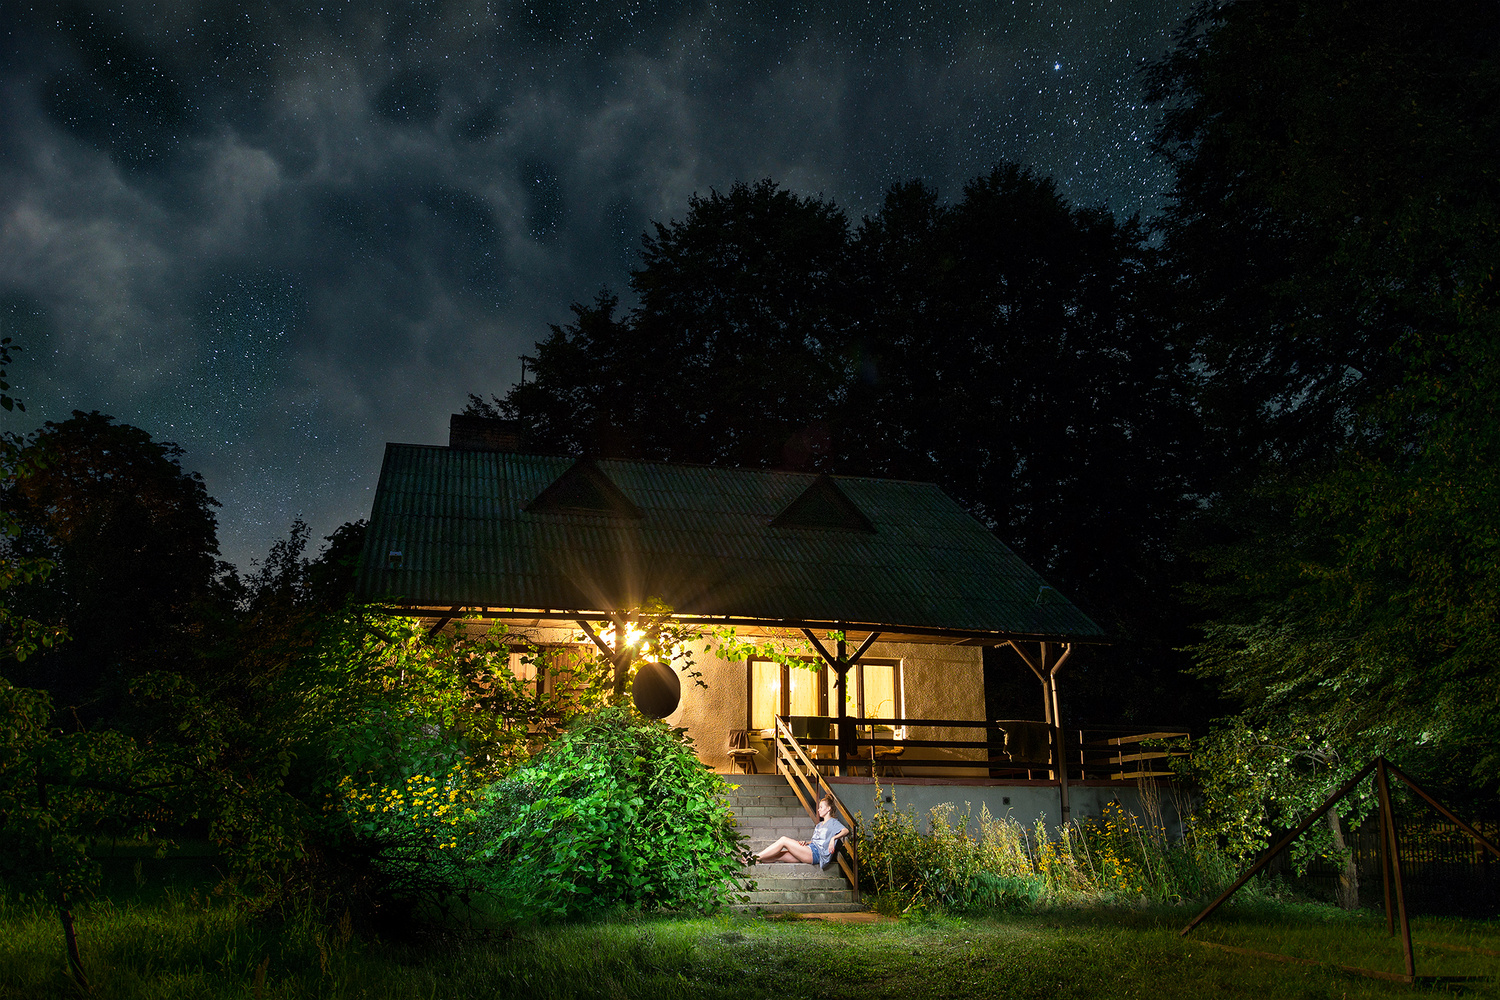 Country House at night by Andy Squib